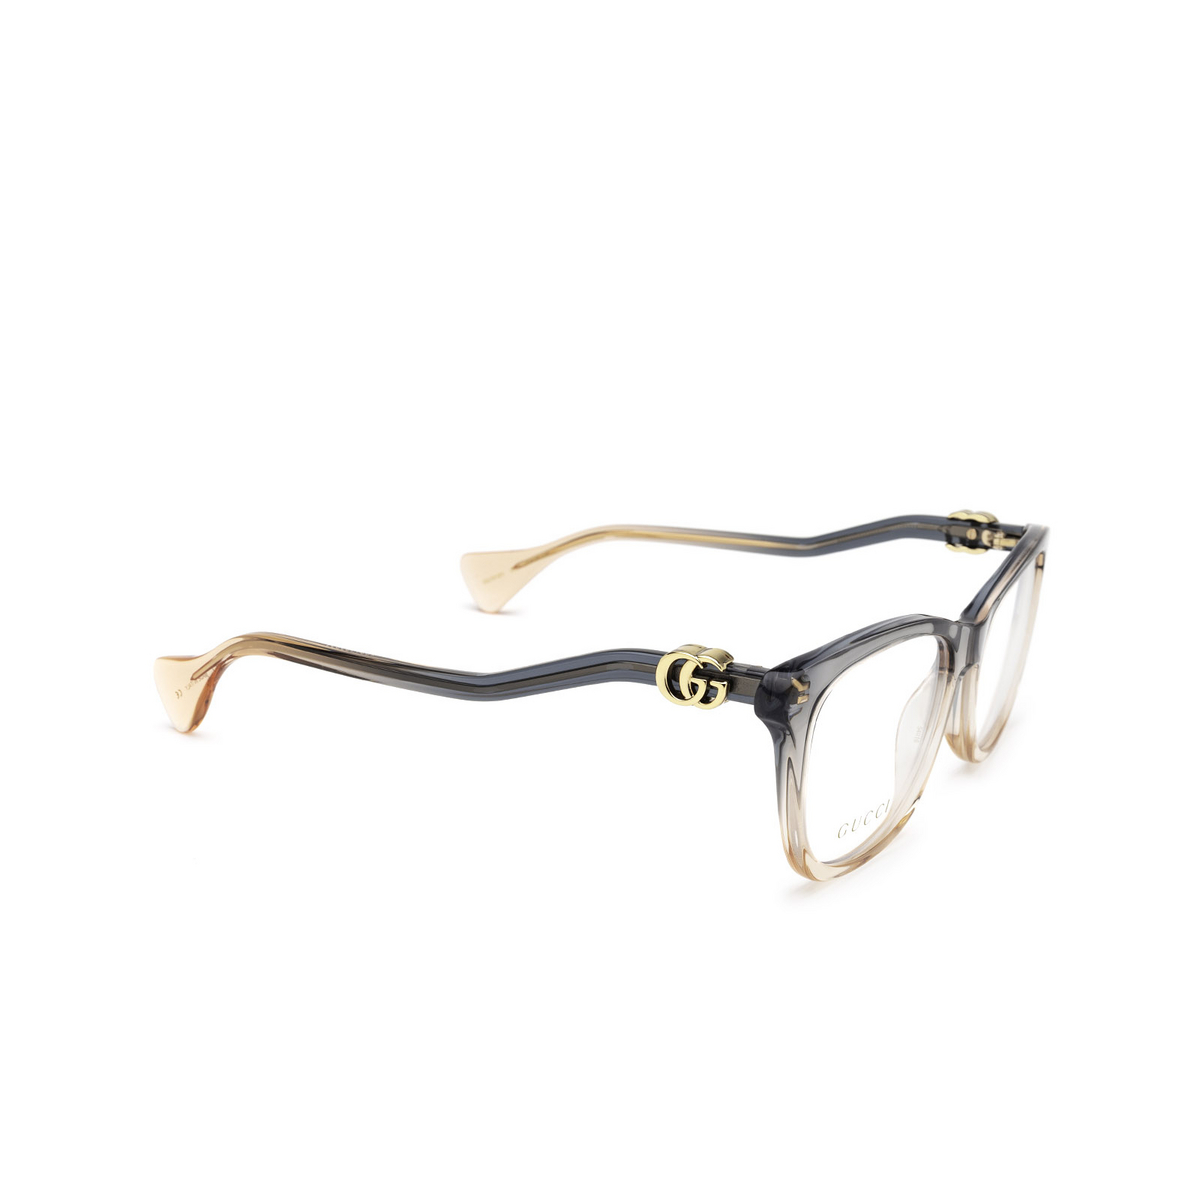 Gucci® Cat-eye Eyeglasses: GG1012O color Blue & Nude Pink 002 - three-quarters view.